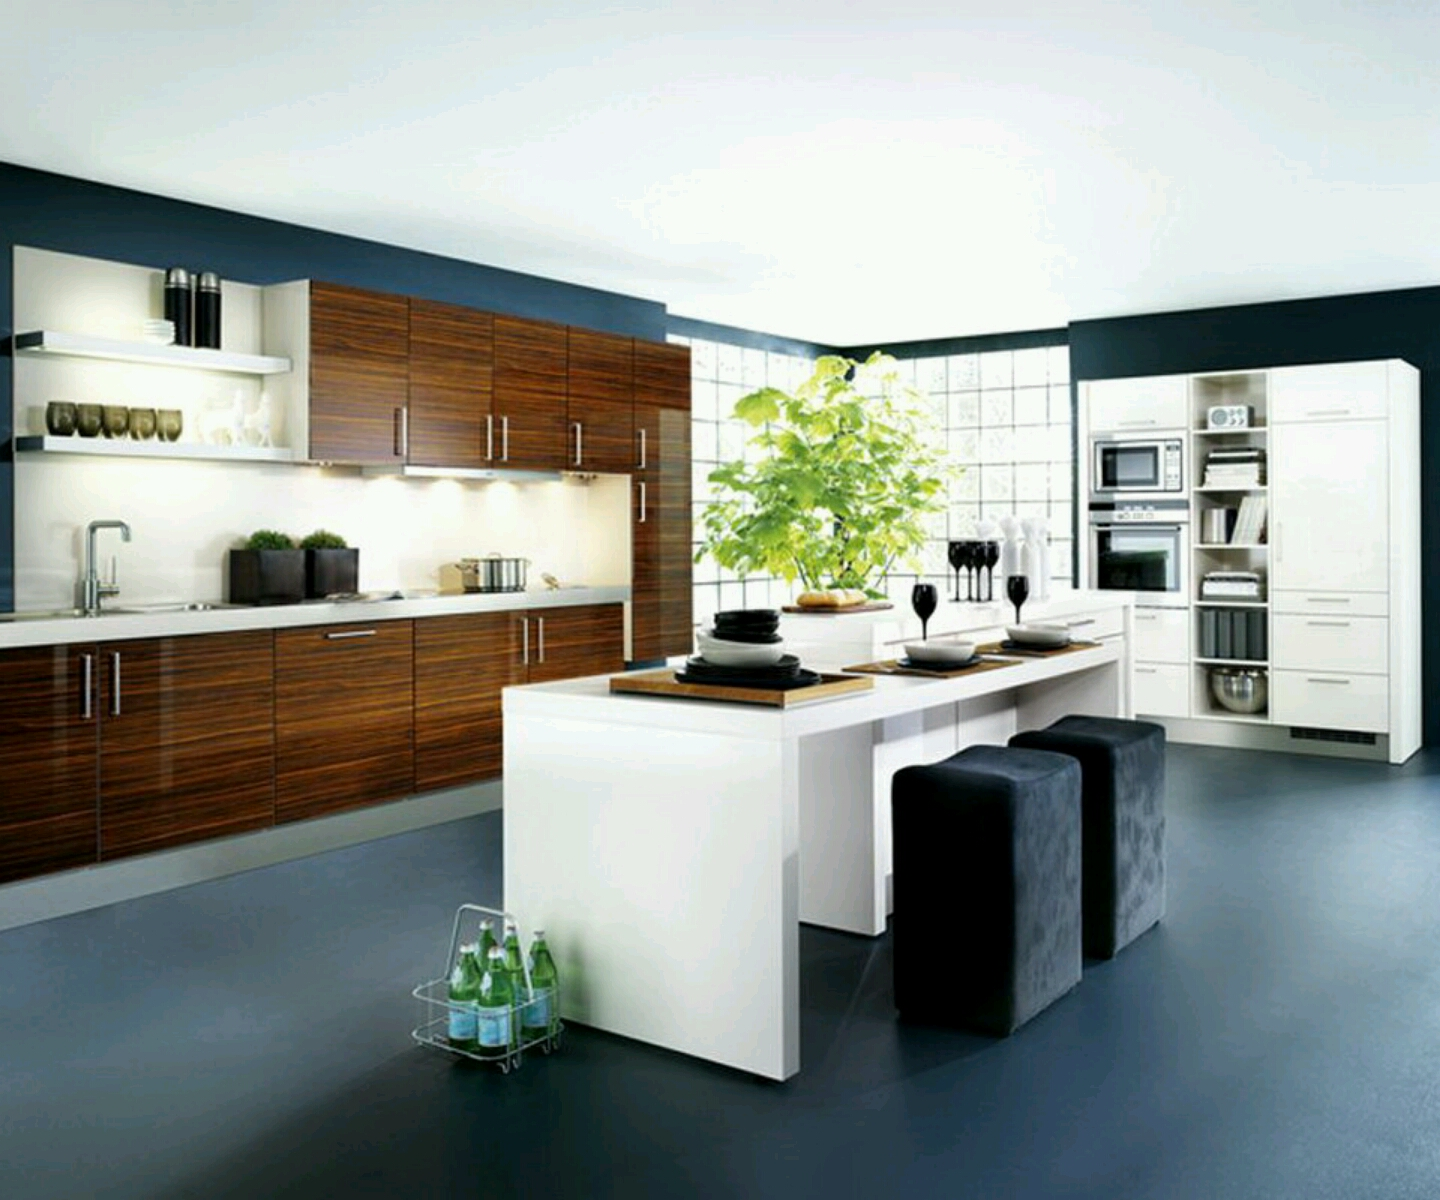 New home designs latest kitchen cabinets designs modern homes Kitchen design for modern house